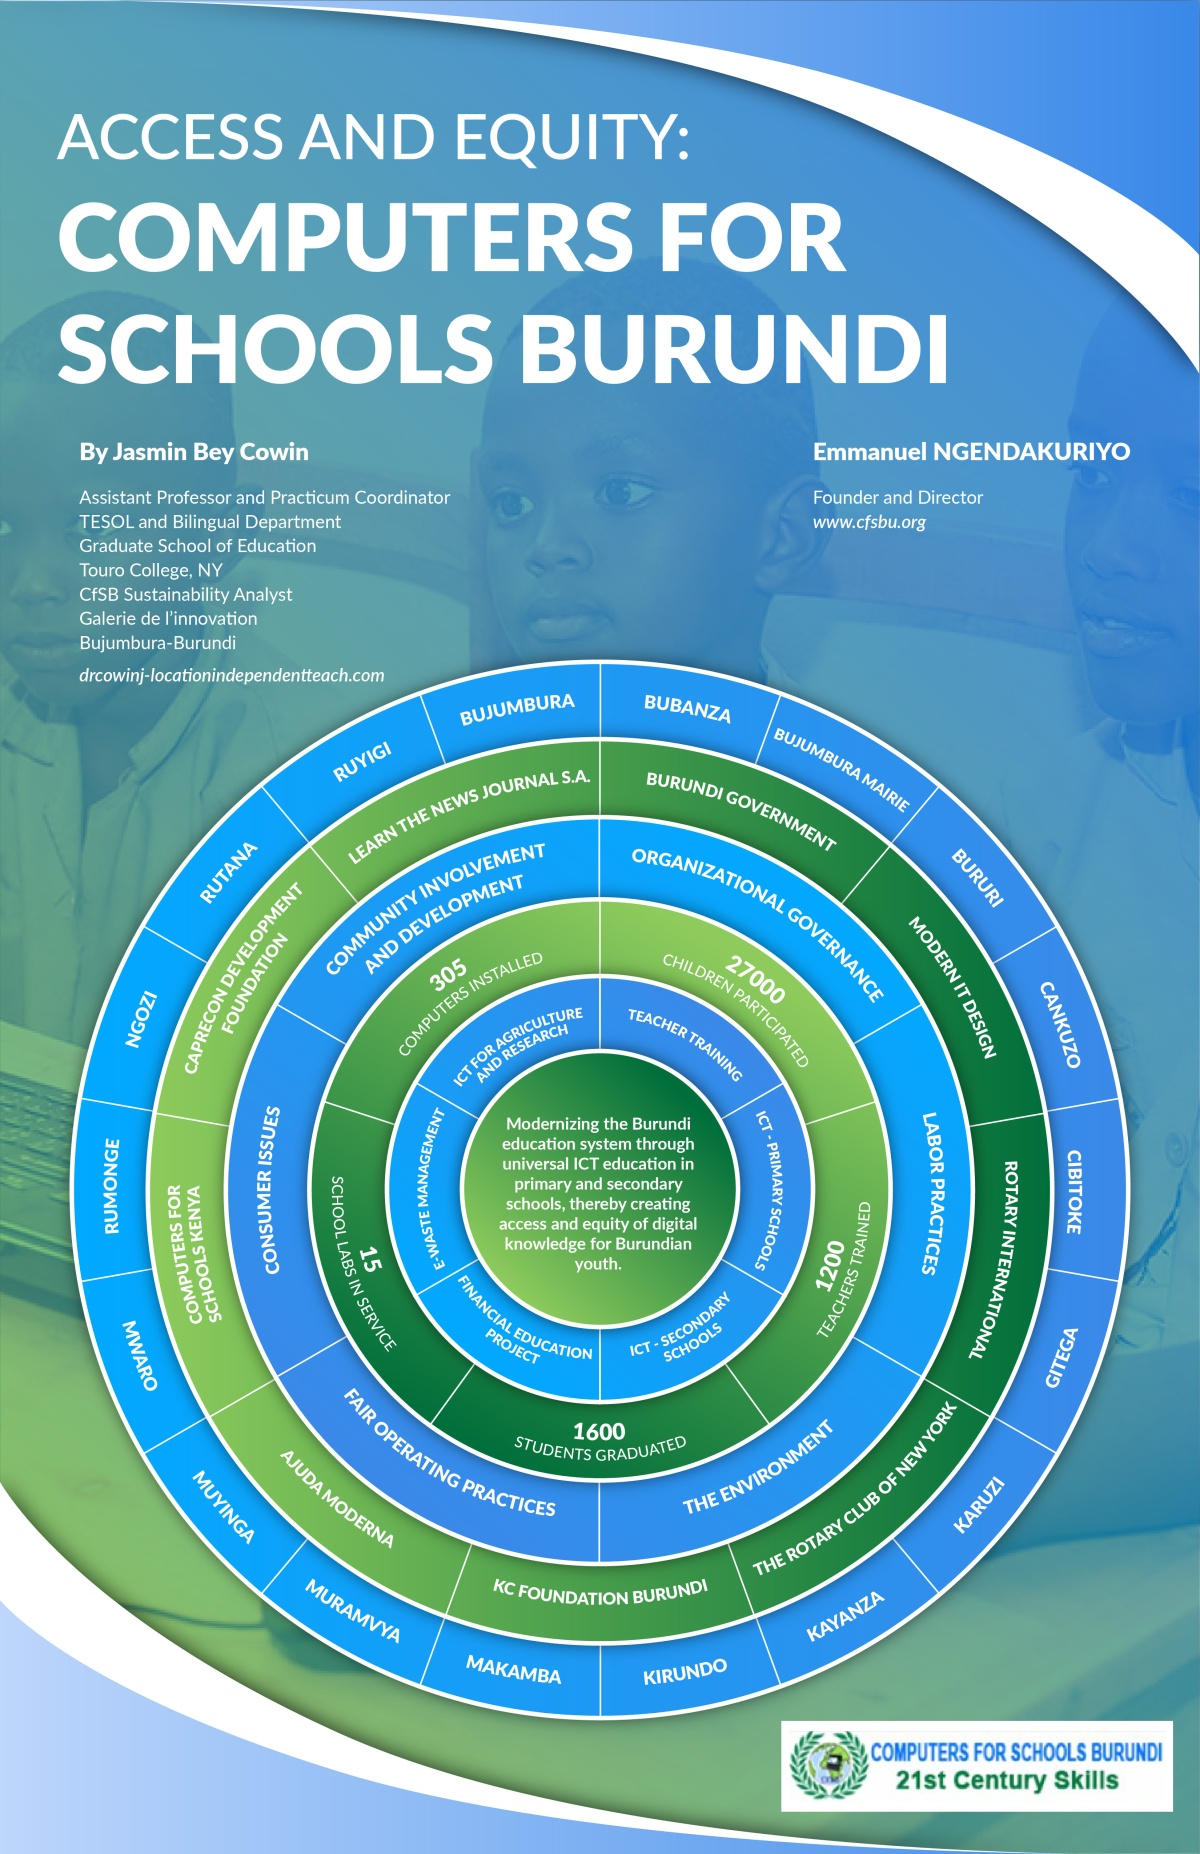 Journal of Higher Education Theory and Practice Publication: Access and Equity: Computers for Schools Burundi by Dr. Jasmin Bey Cowin